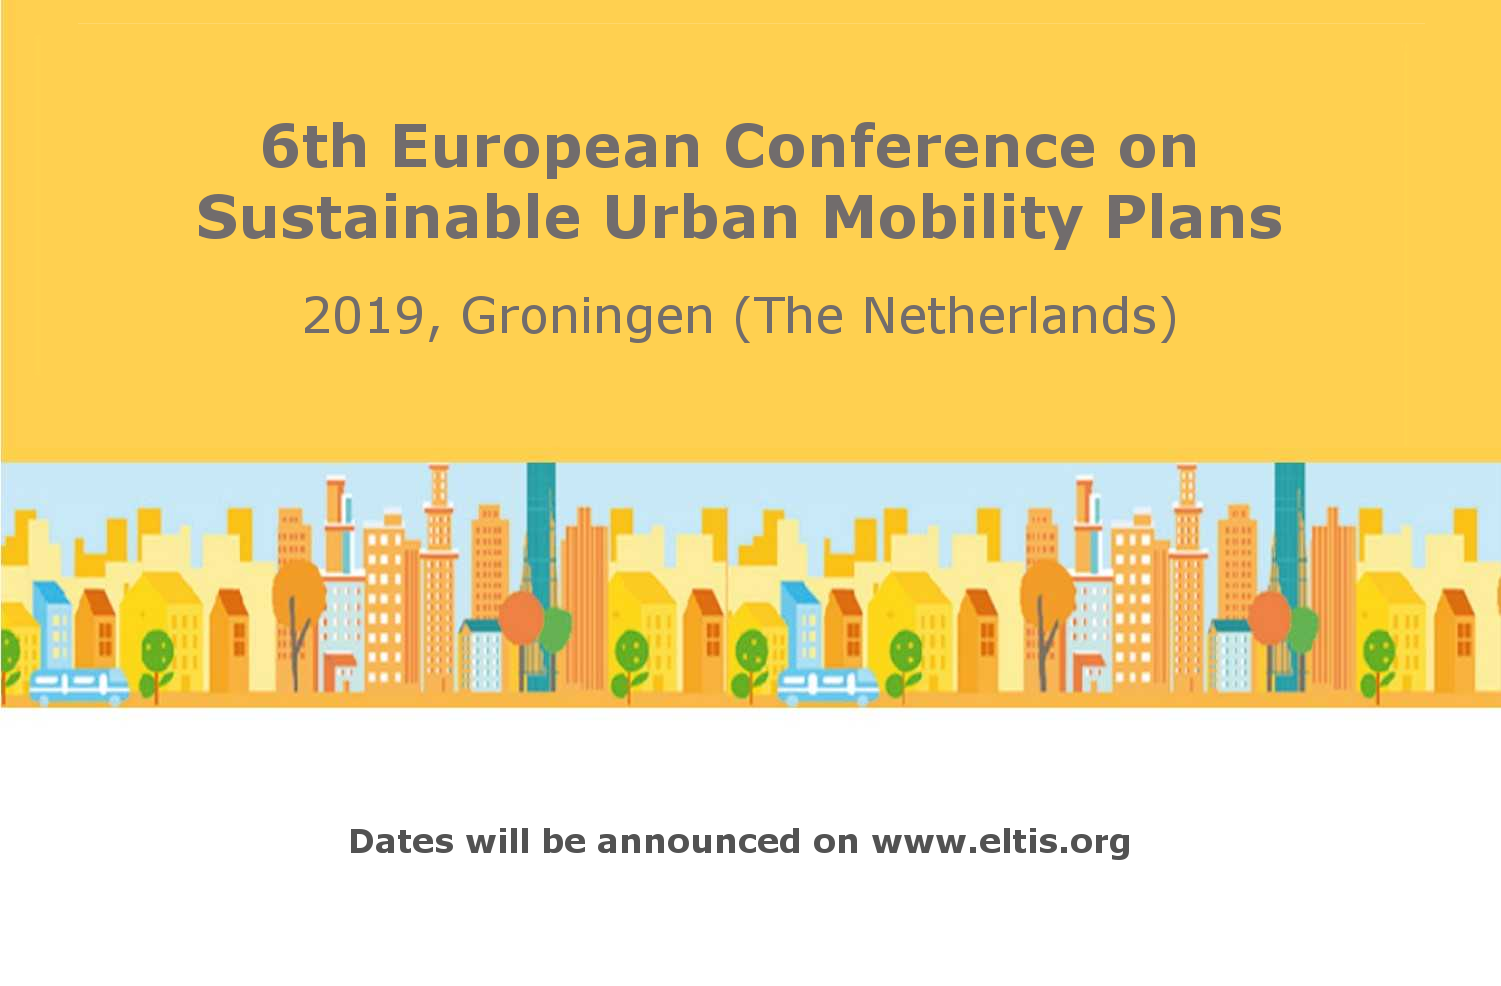 6th European Conference on Sustainable Urban Mobility Plans